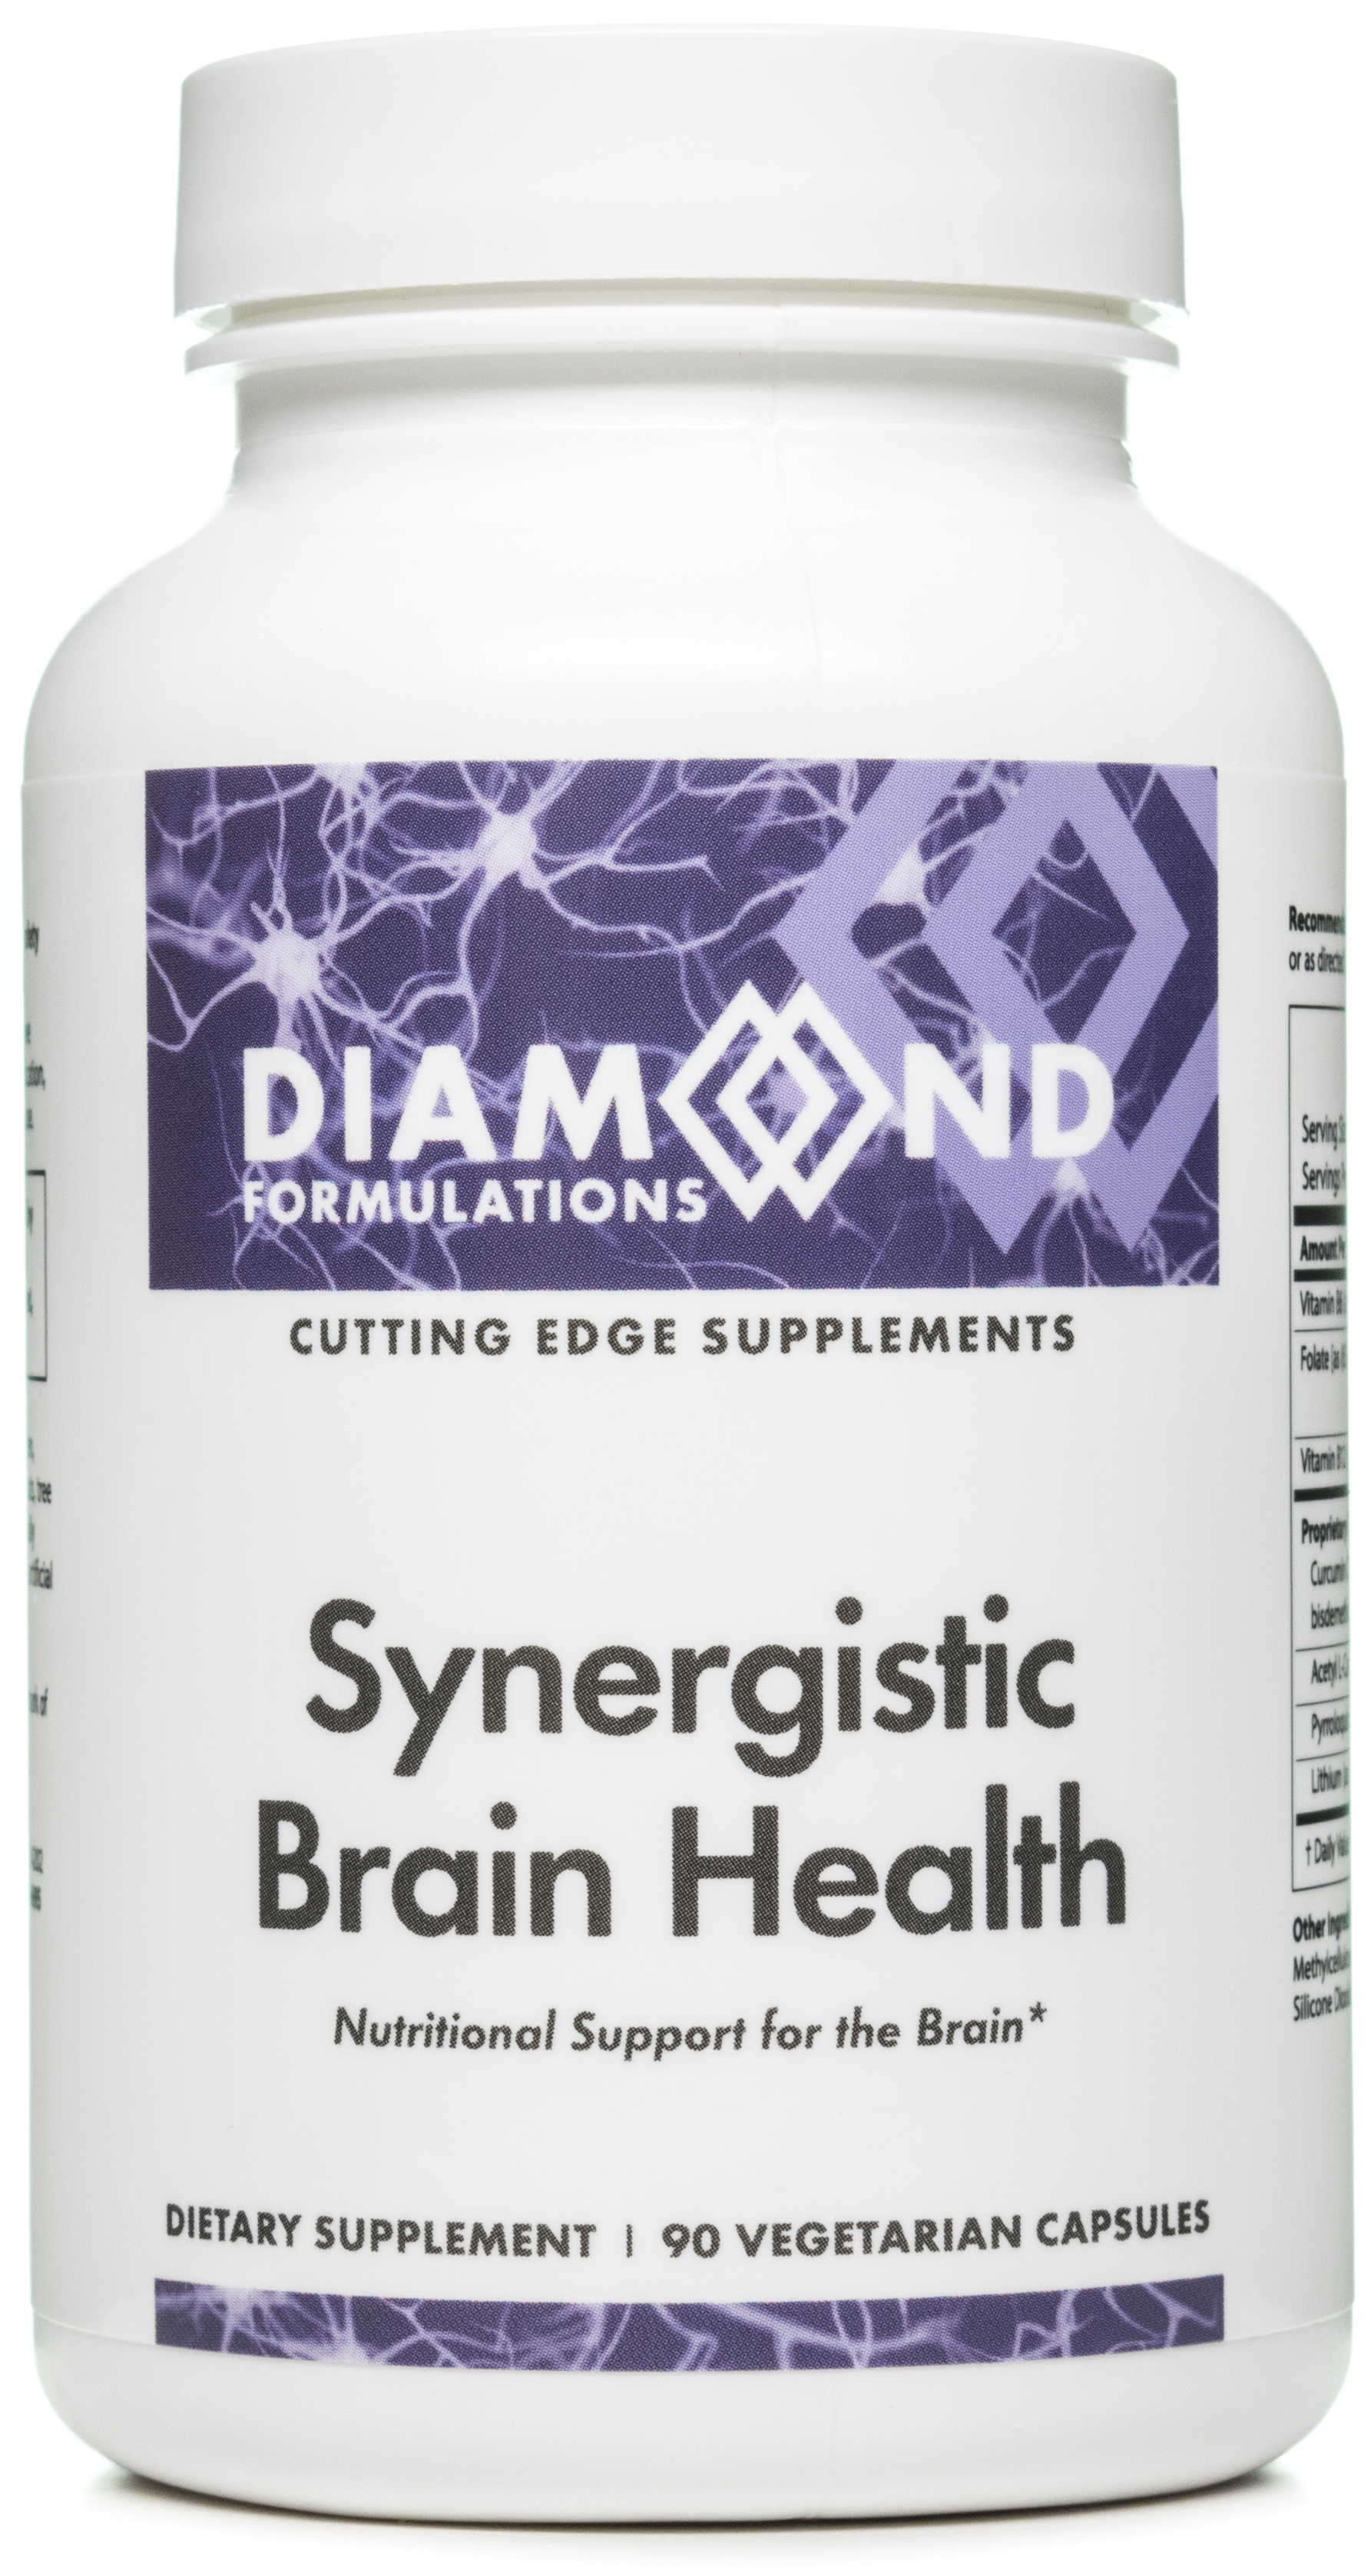 synergistic-brain-health-by-diamond-formulations.jpg